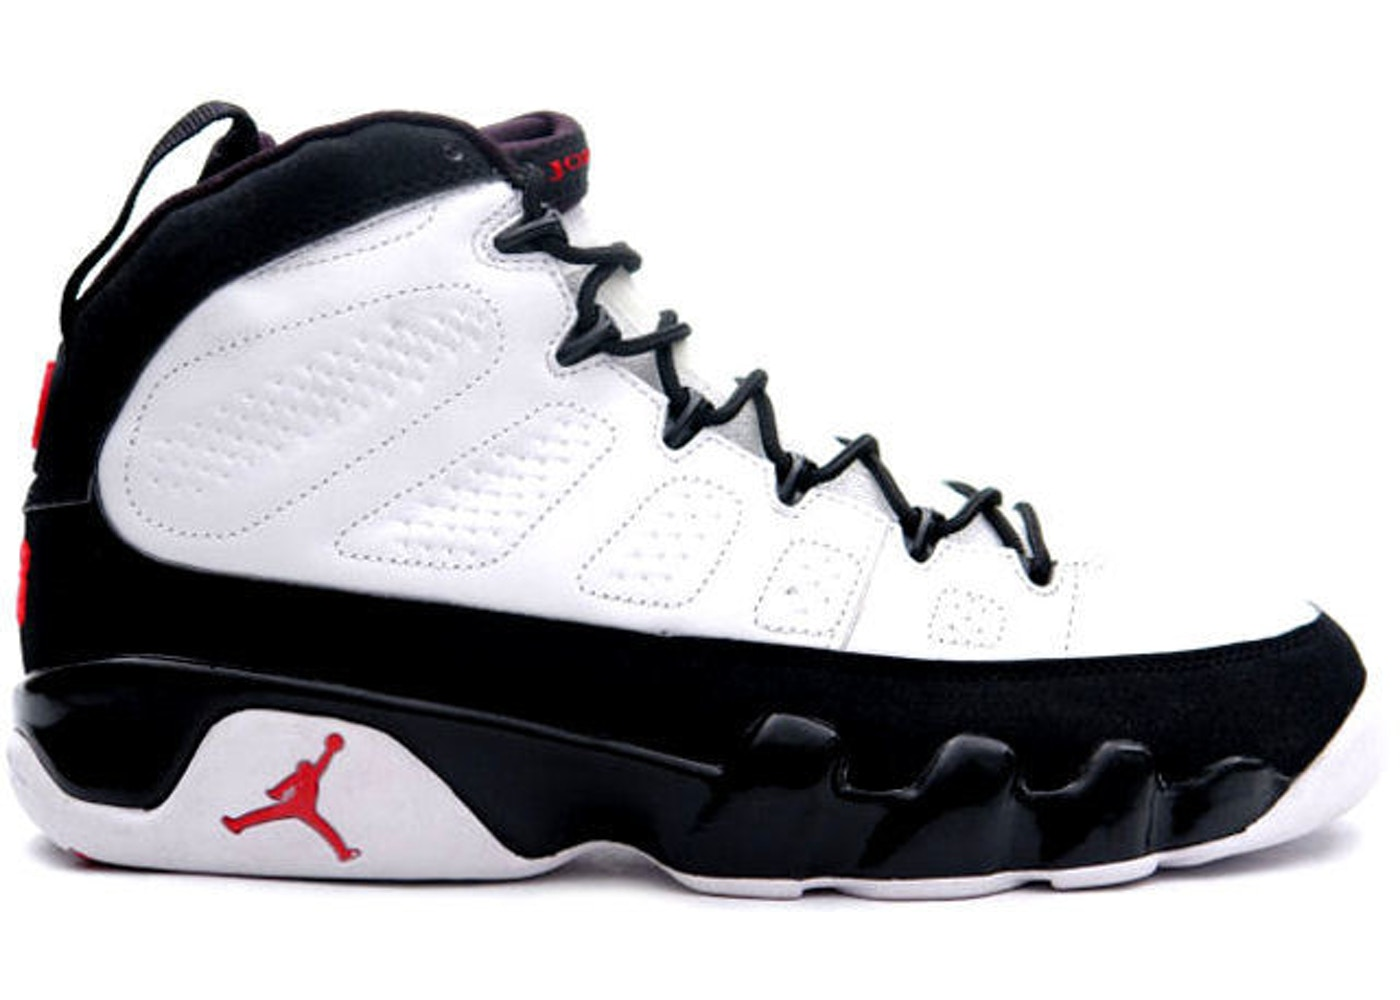 334495a9983b97 Air Jordan 9 Size 9 Shoes - Average Sale Price